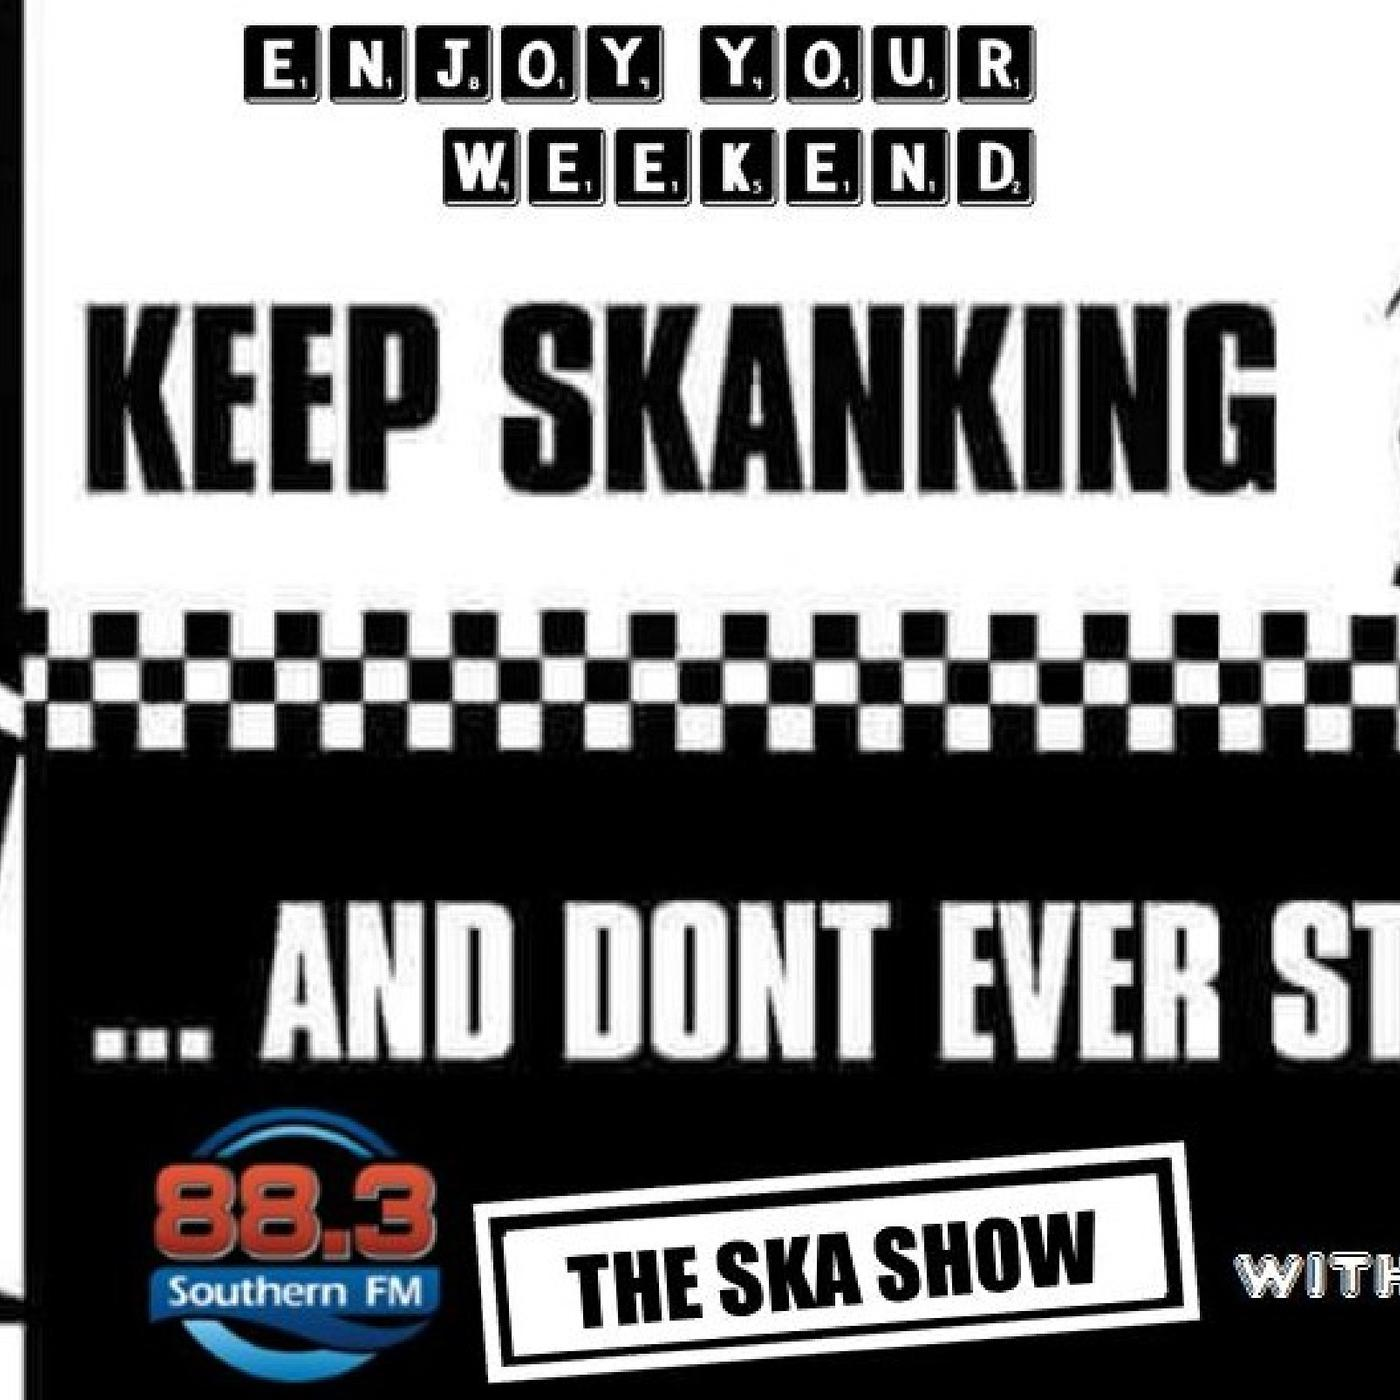 The Ska Show with Beefy, Mar 29 2018 - The Top 30 Ska Tunes of All Time